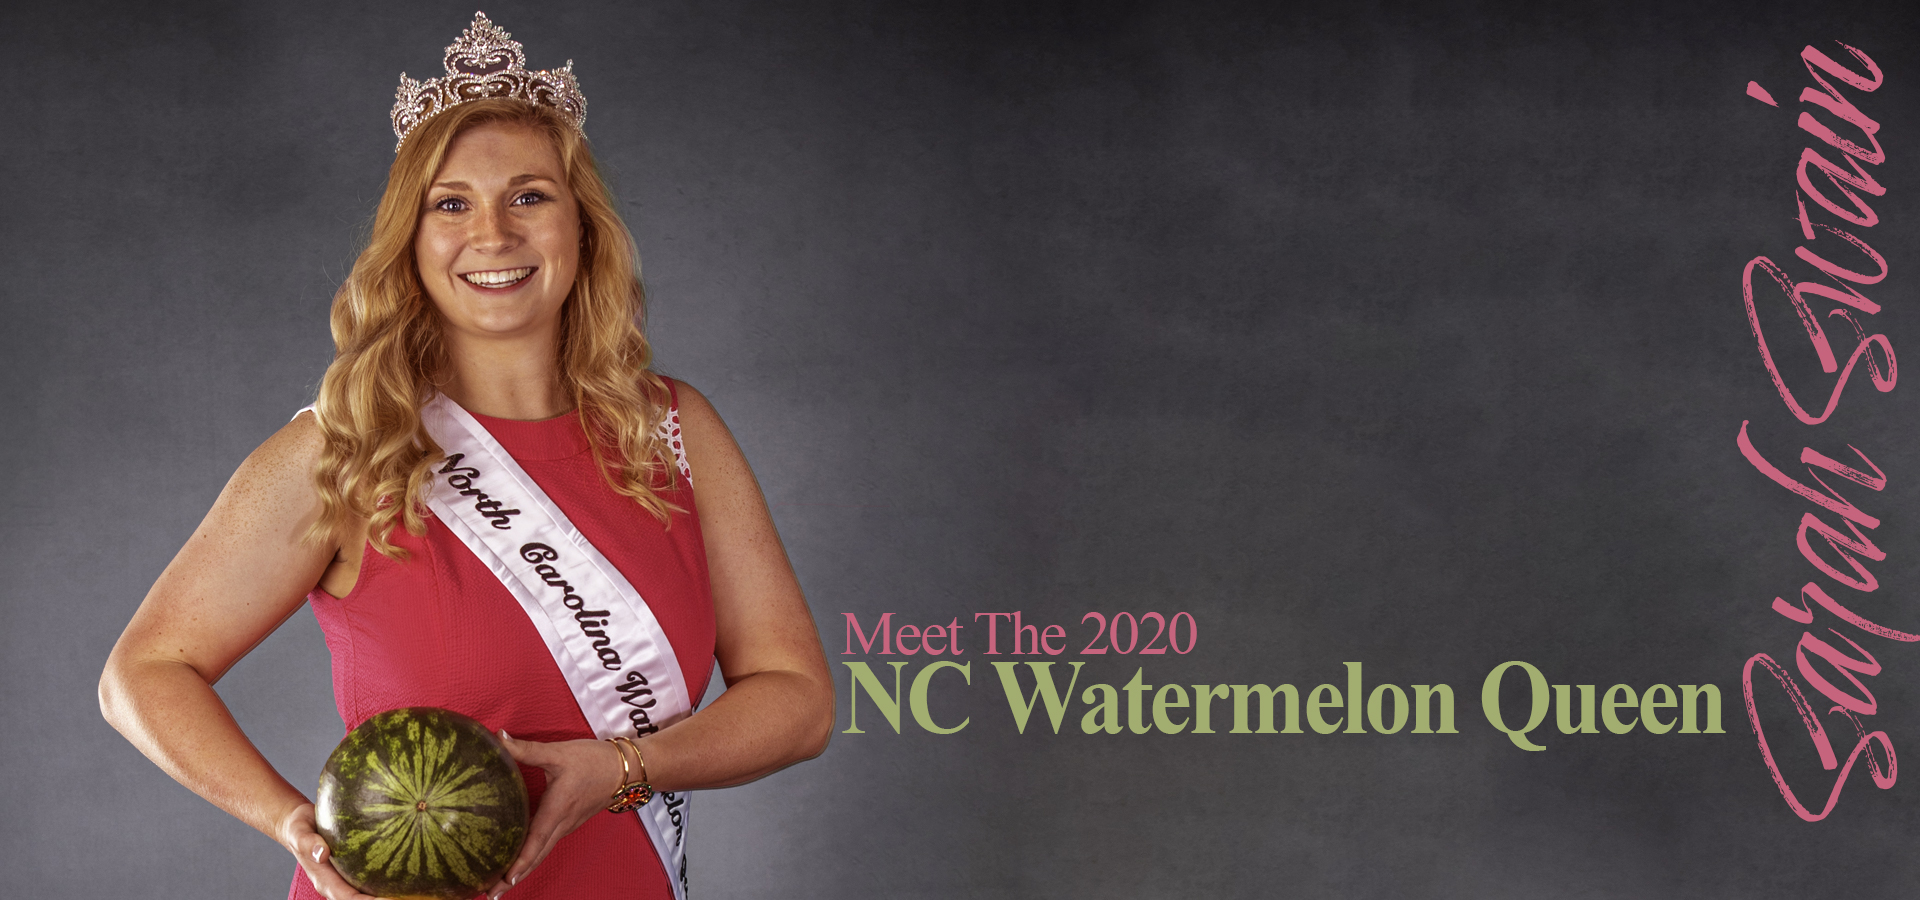 NC Watermelon Queen